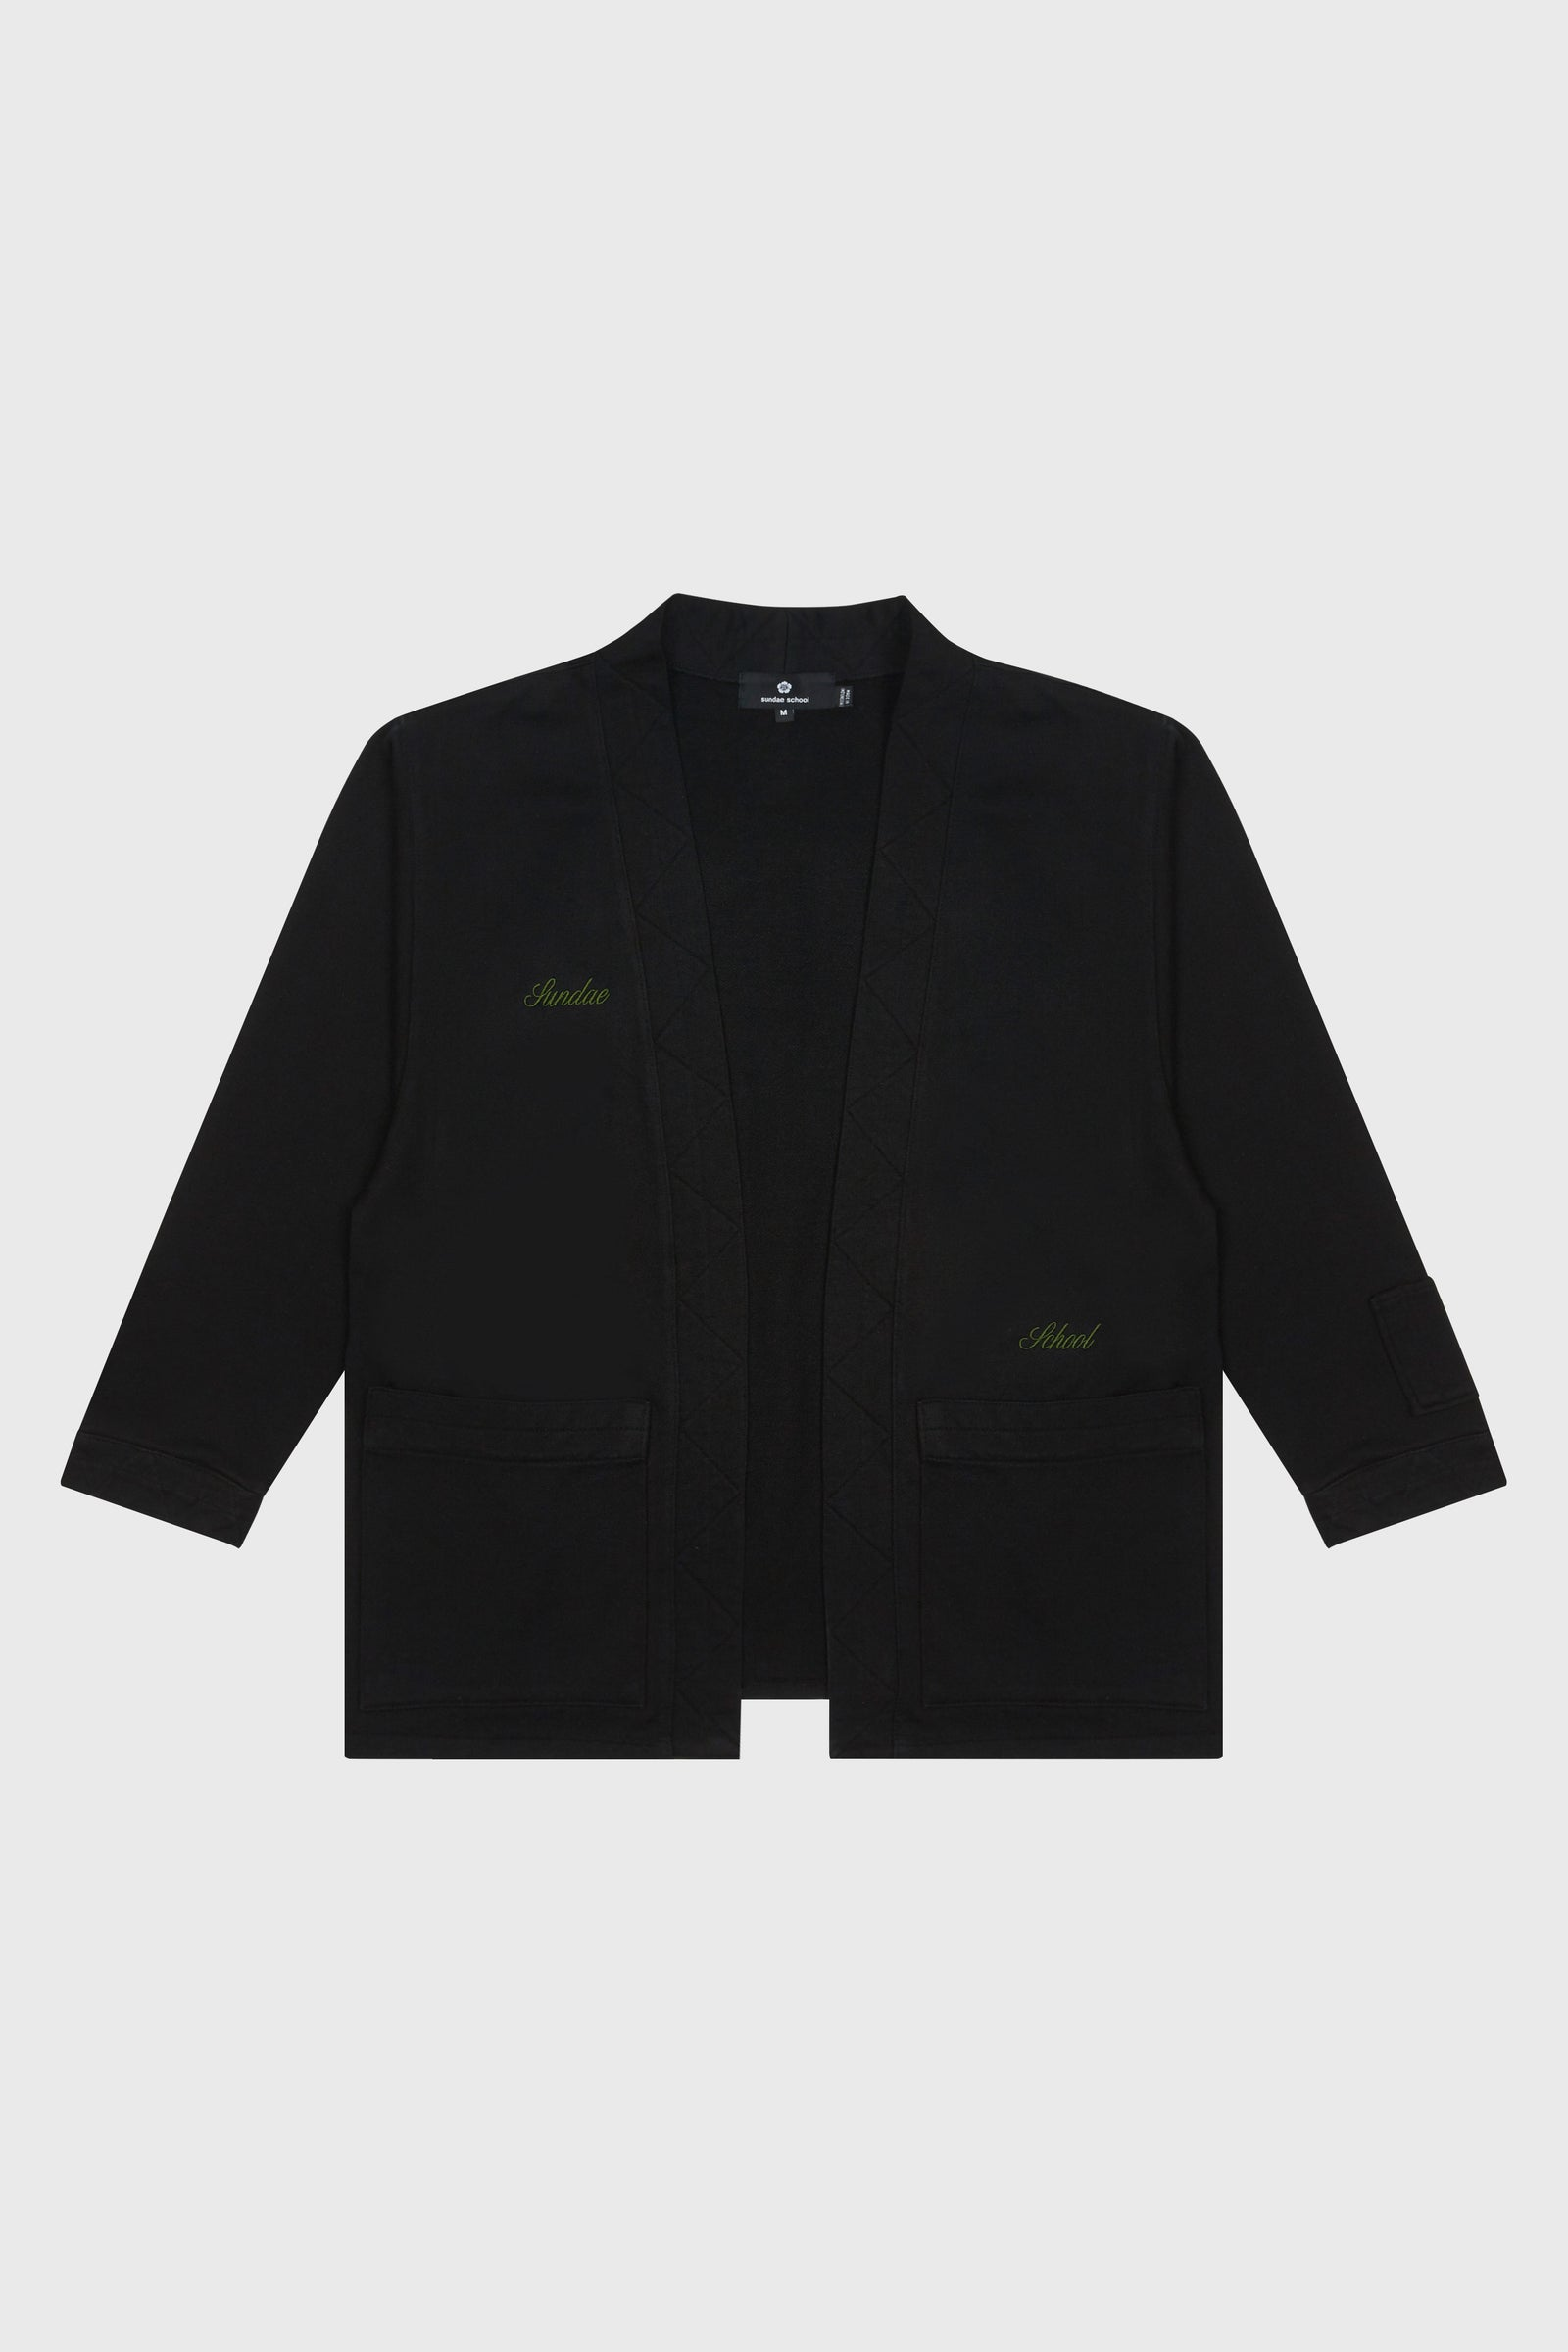 Photo of Adam & Eve Black Cardigan, number 3